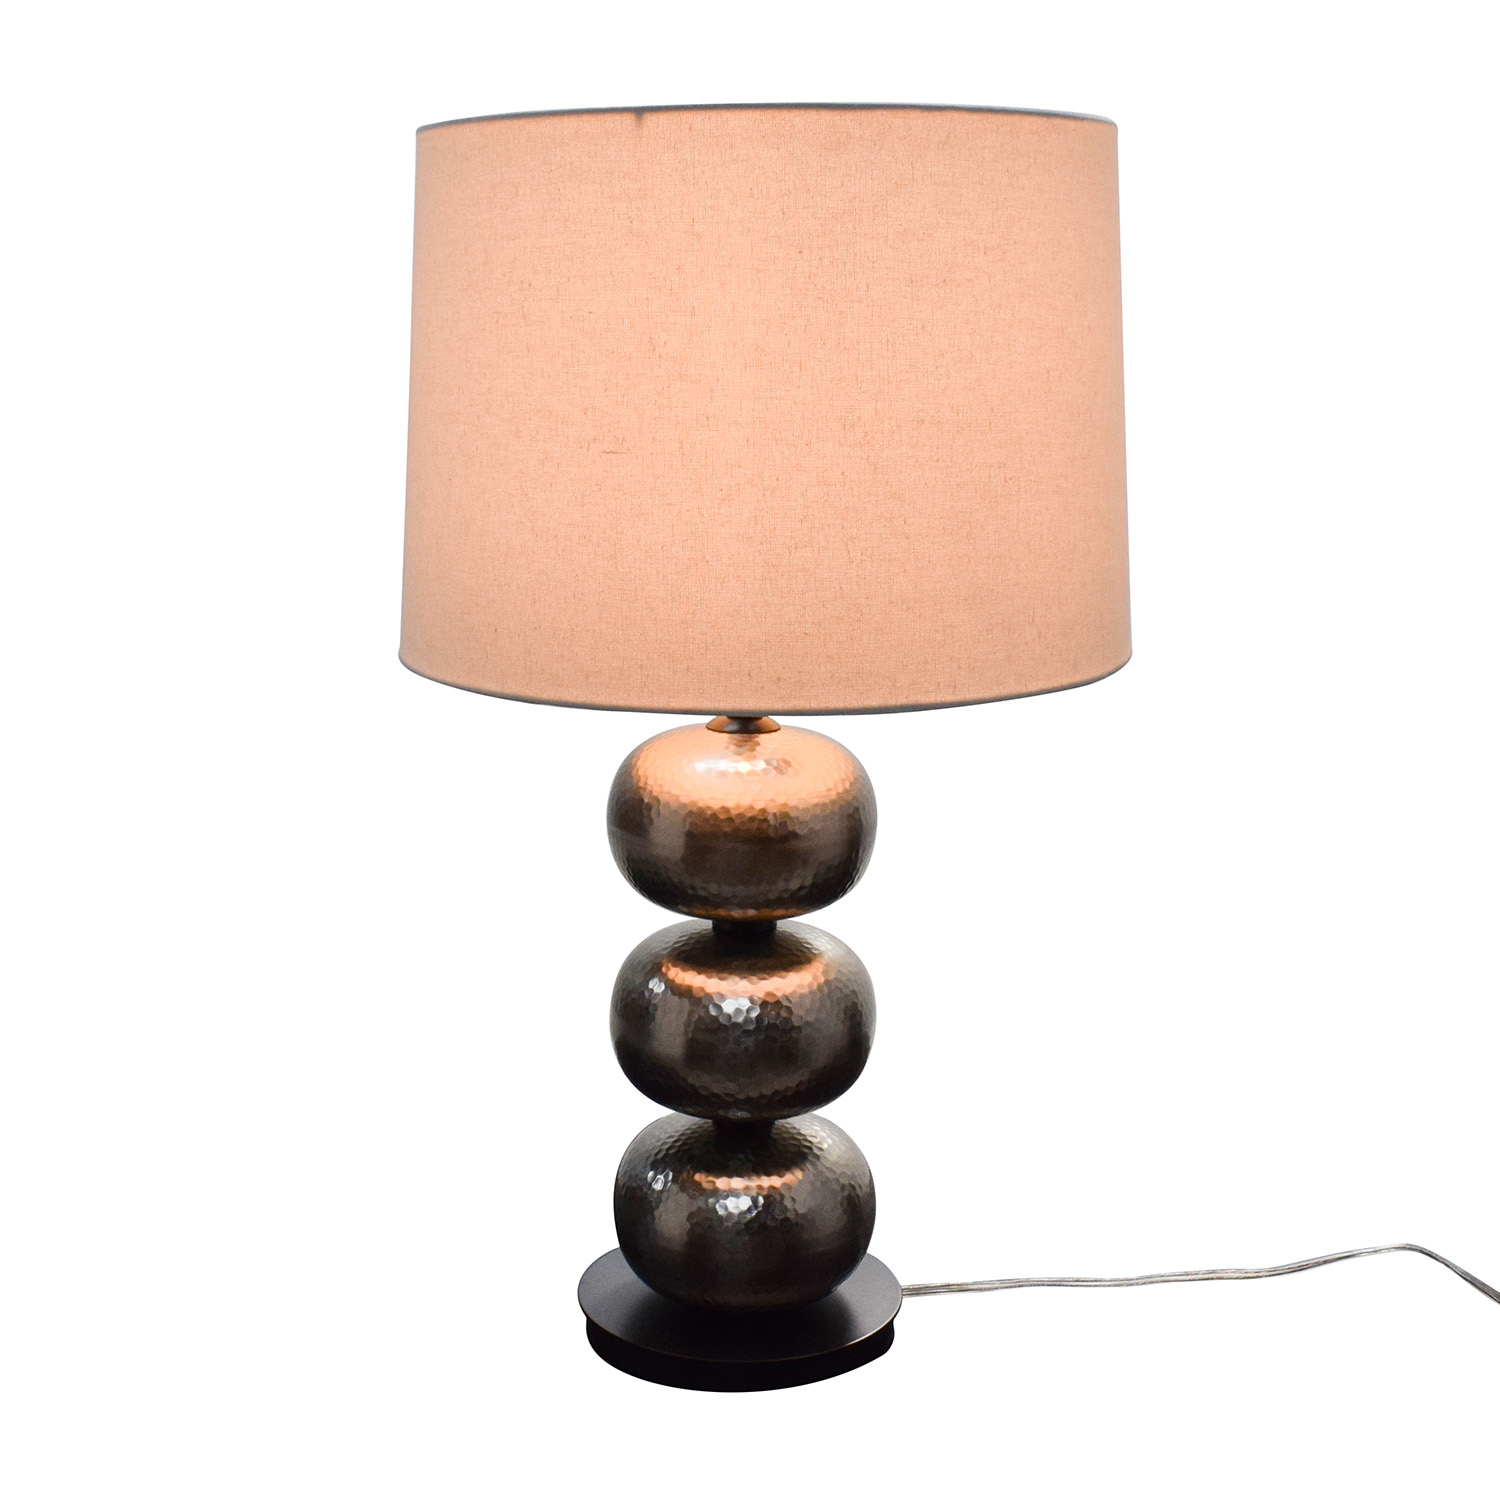 71 Off West Elm West Elm Abacus Table Lamp Decor